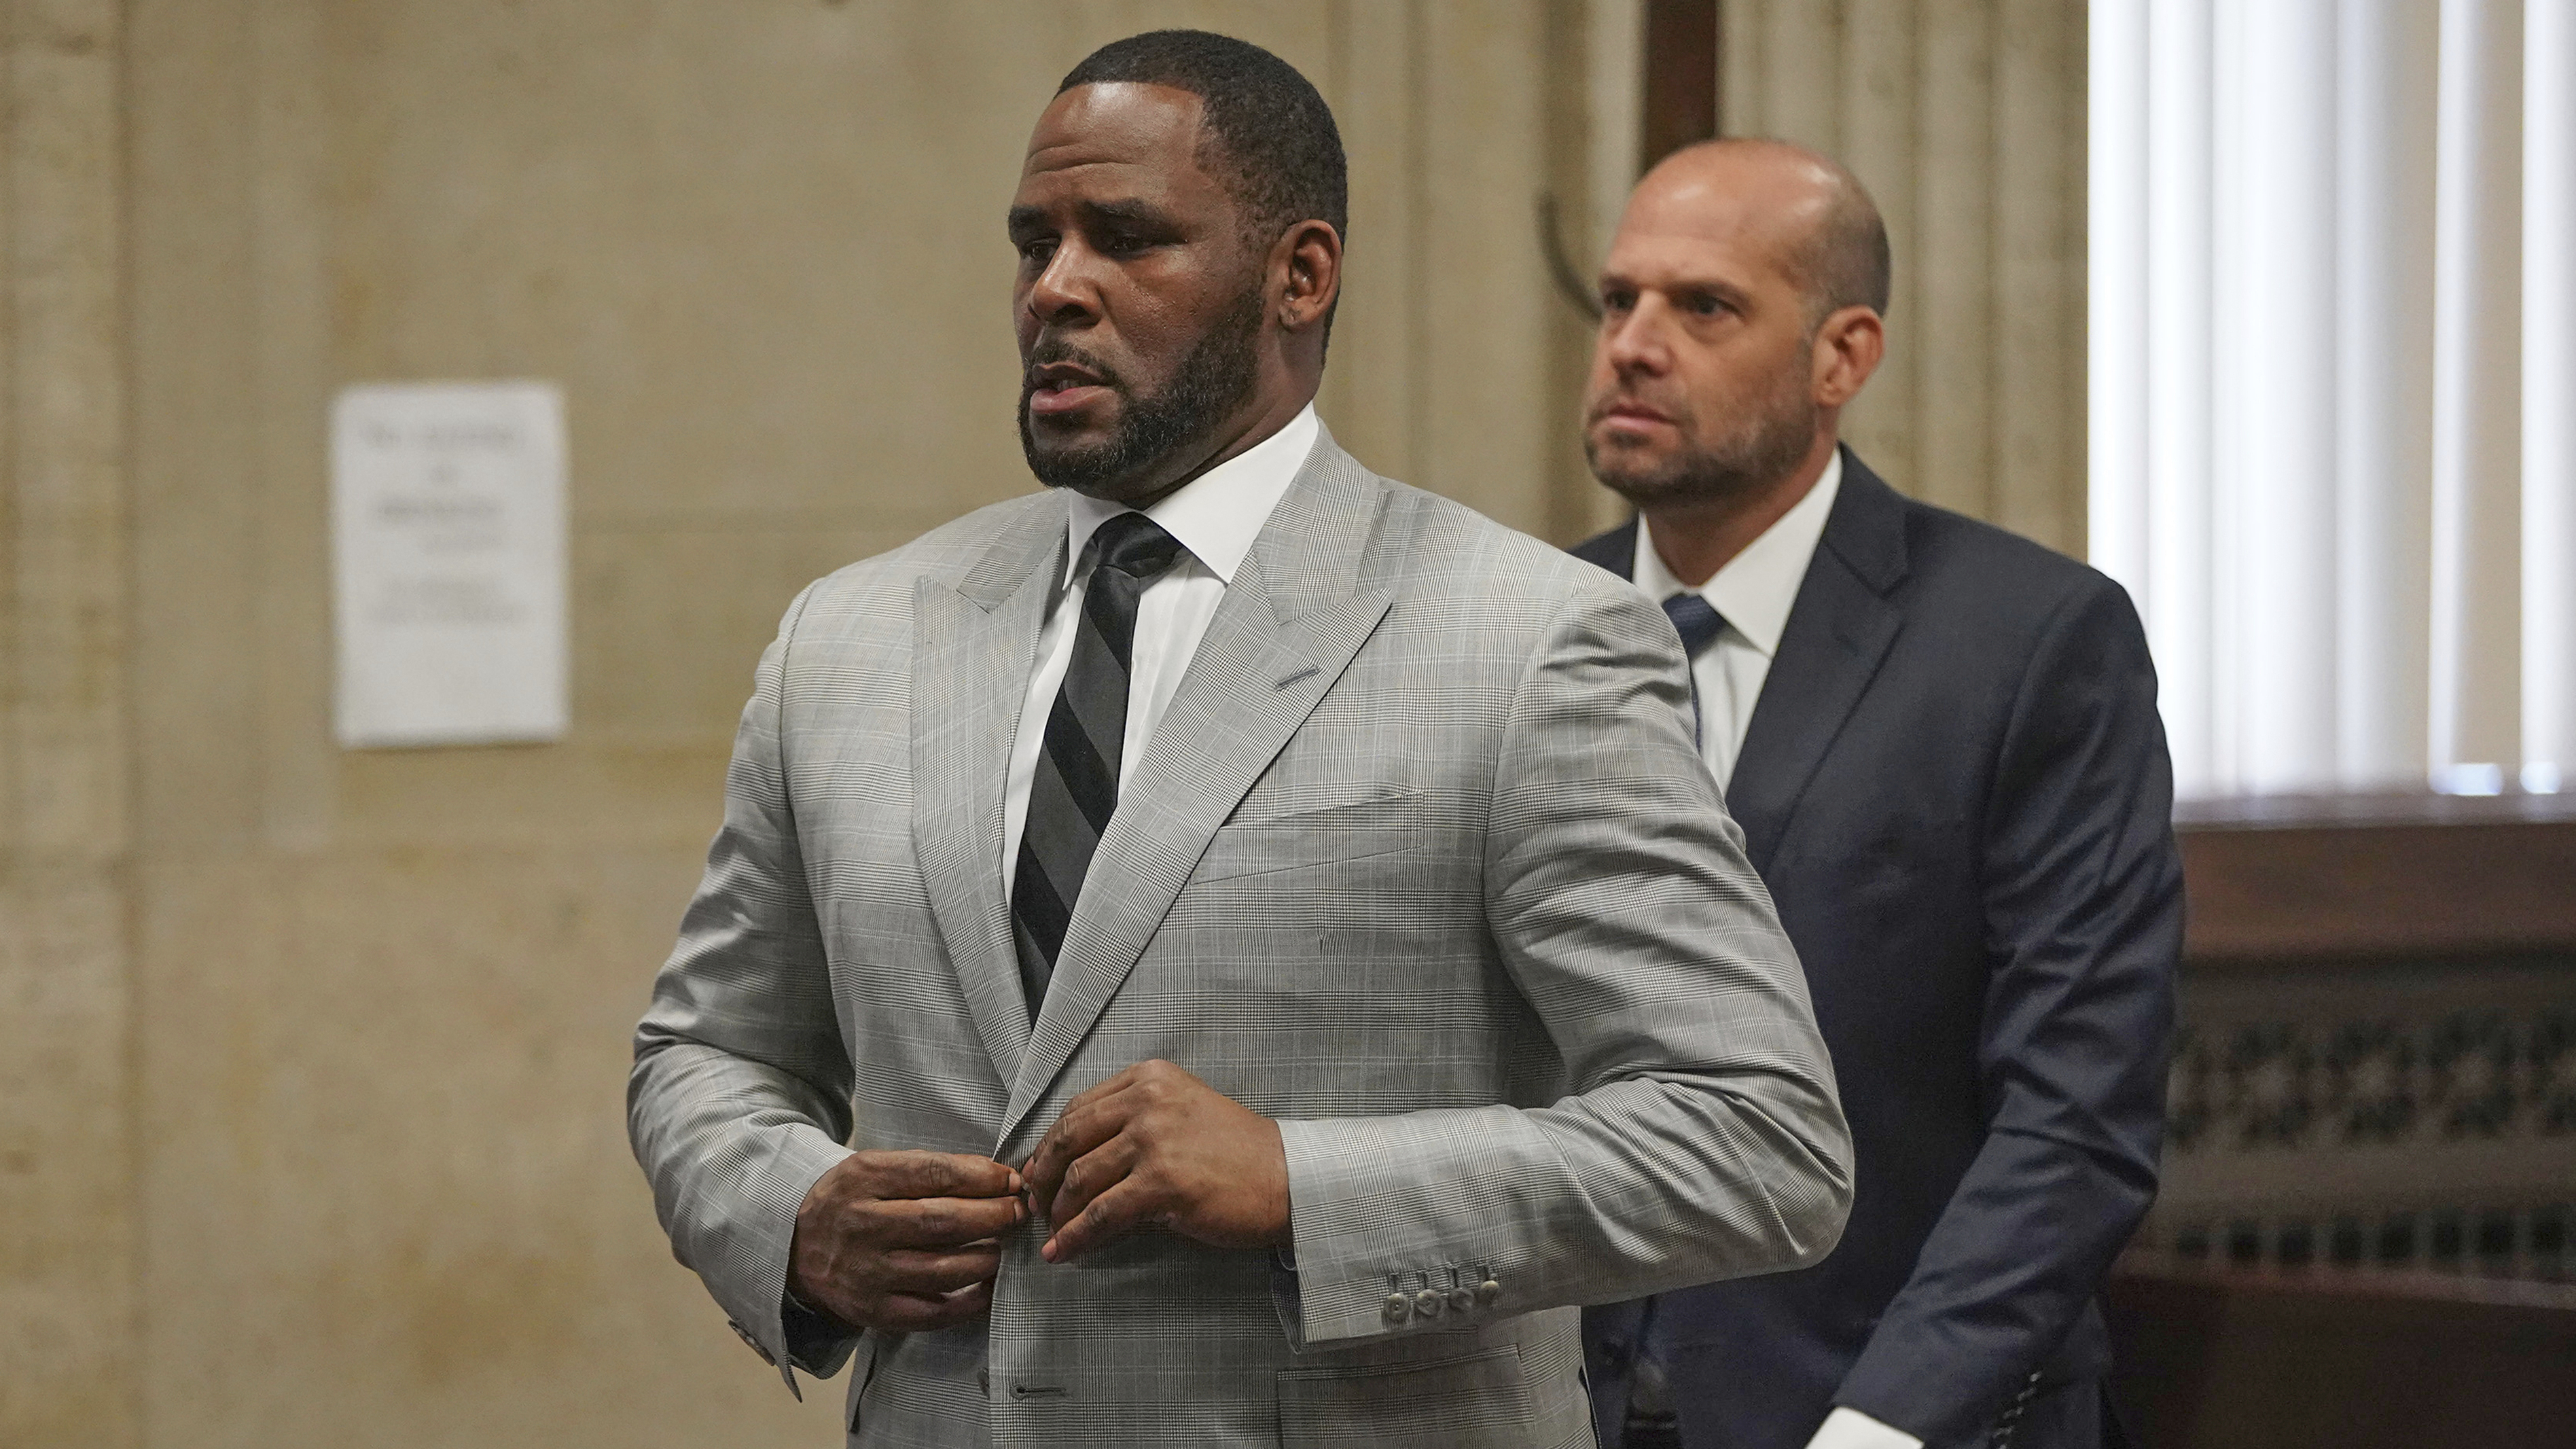 R. Kelly's Associates Gave The FBI Tapes Leading To His Arrest